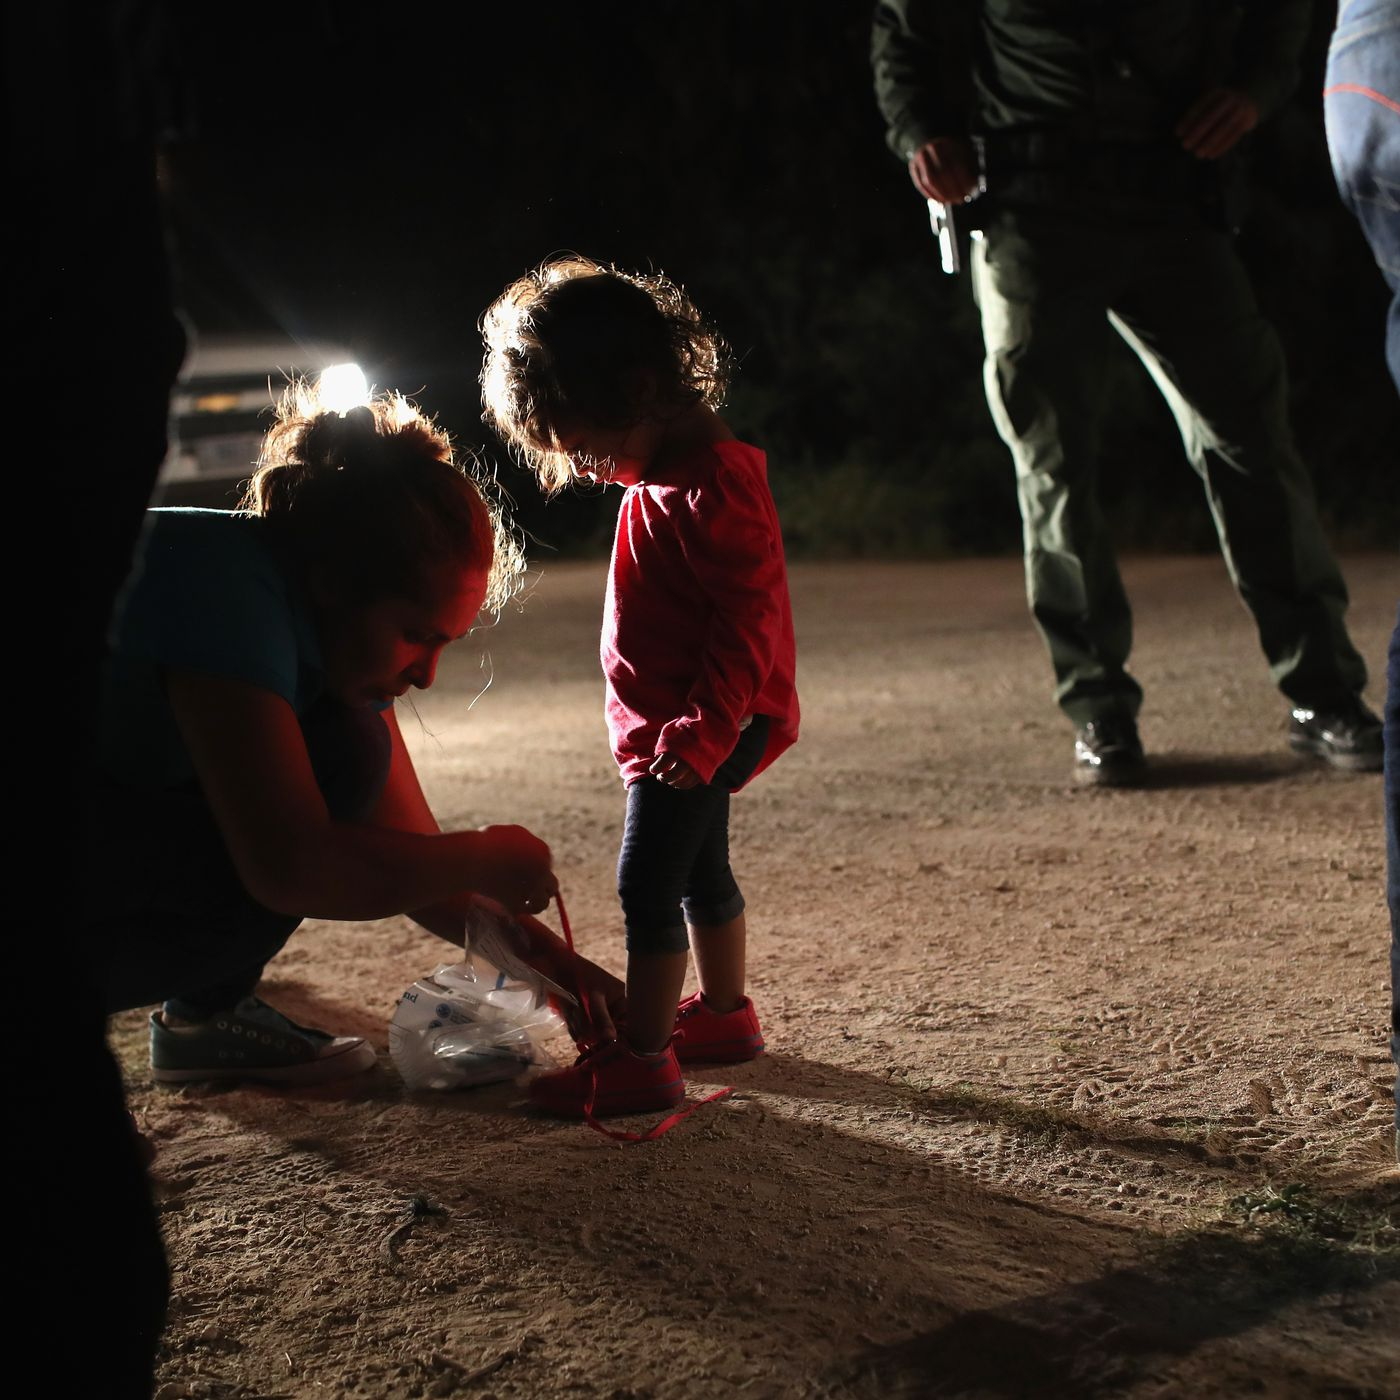 Family separation at the border: the past 72 hours in